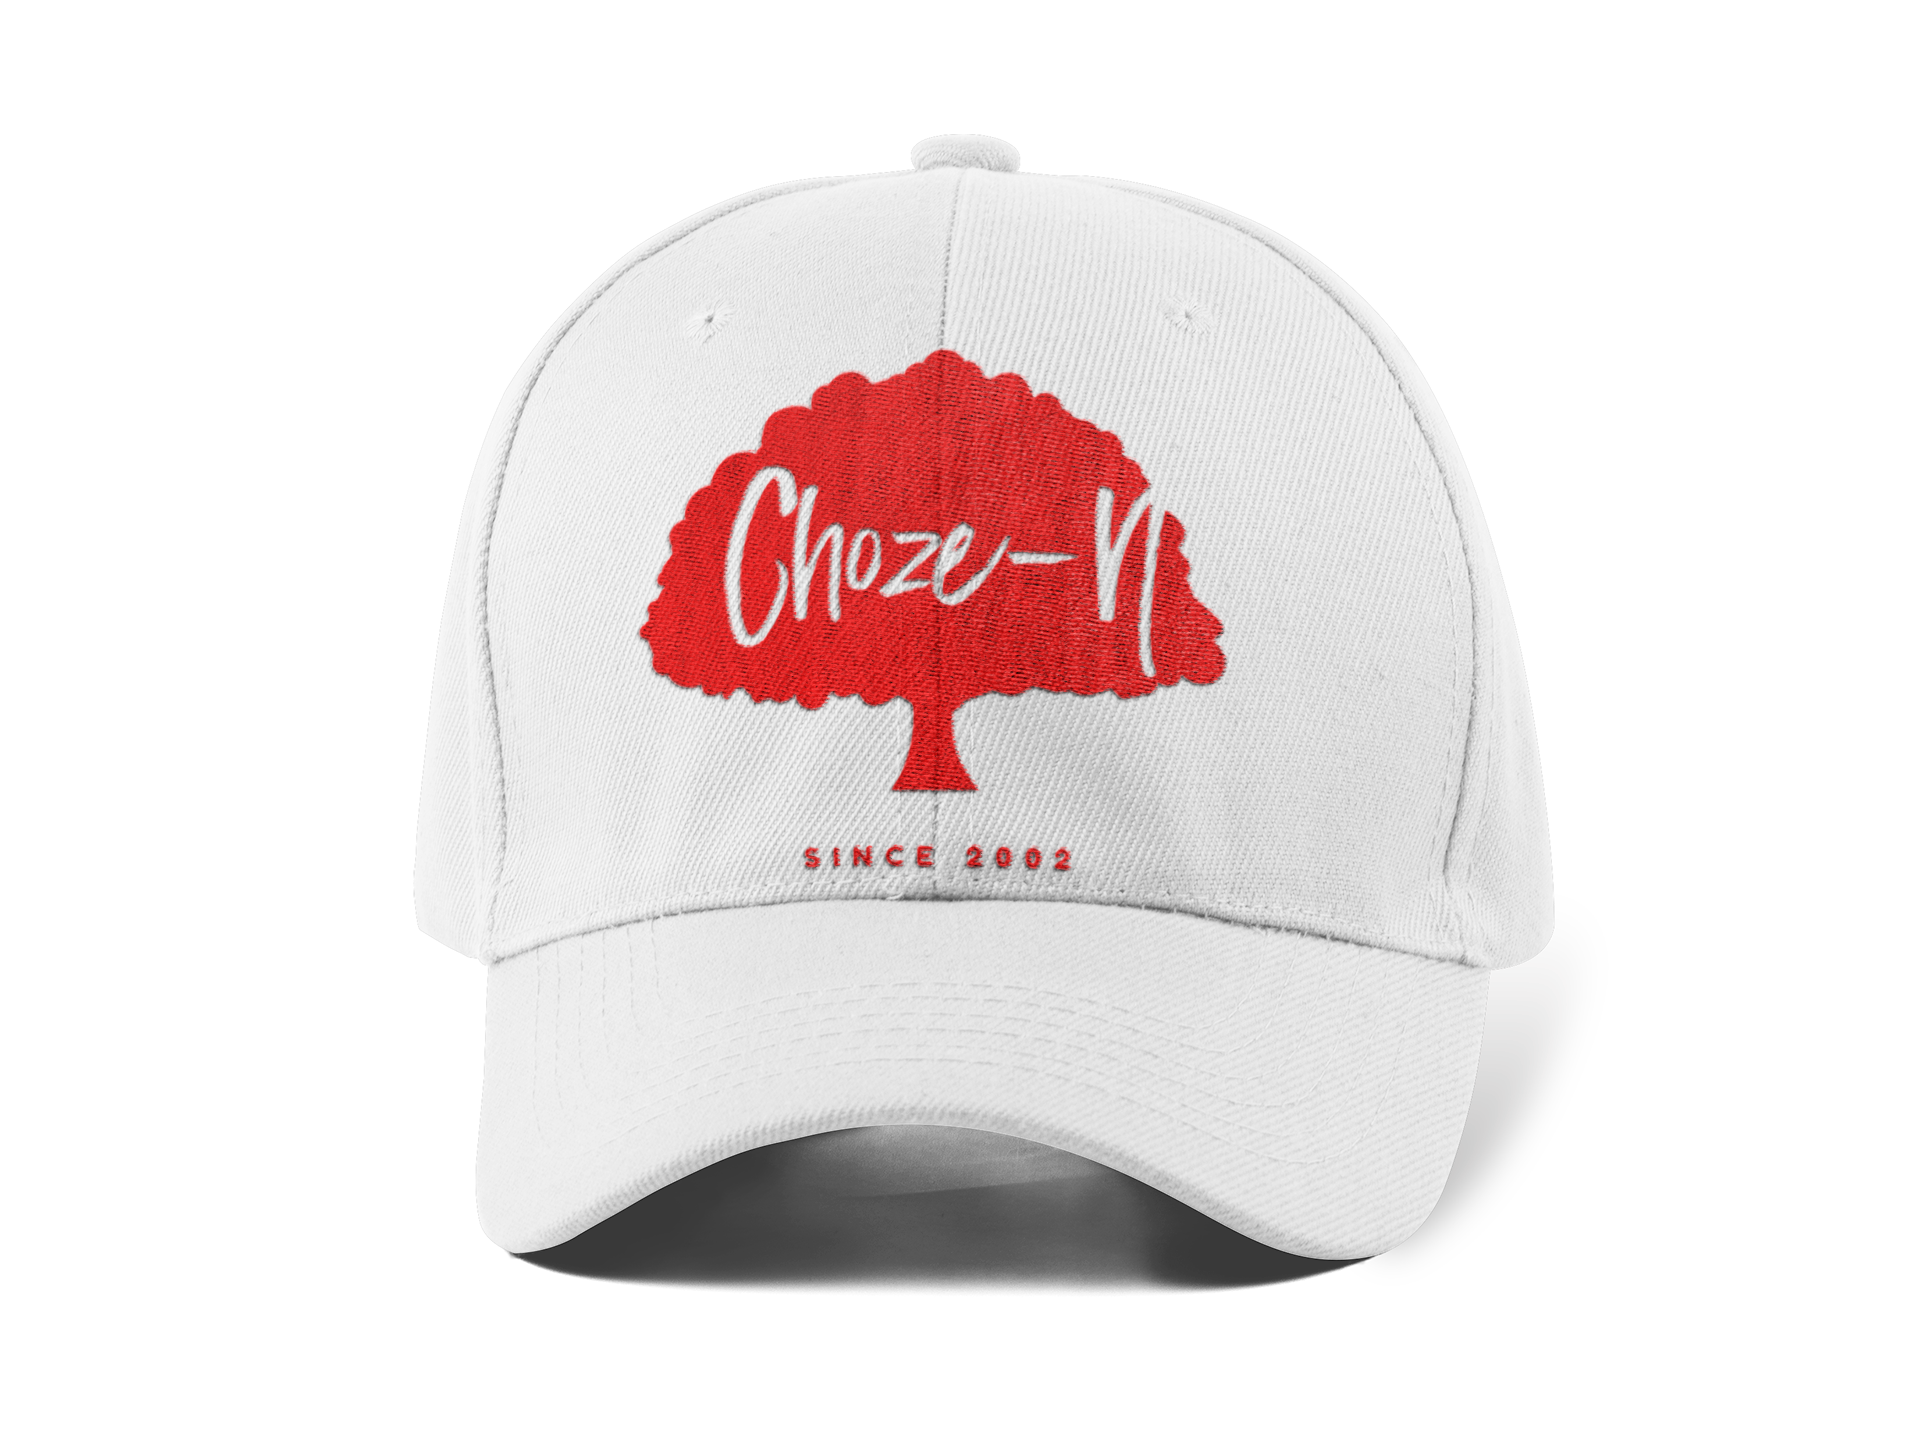 Choze-N Red Tree White Hat